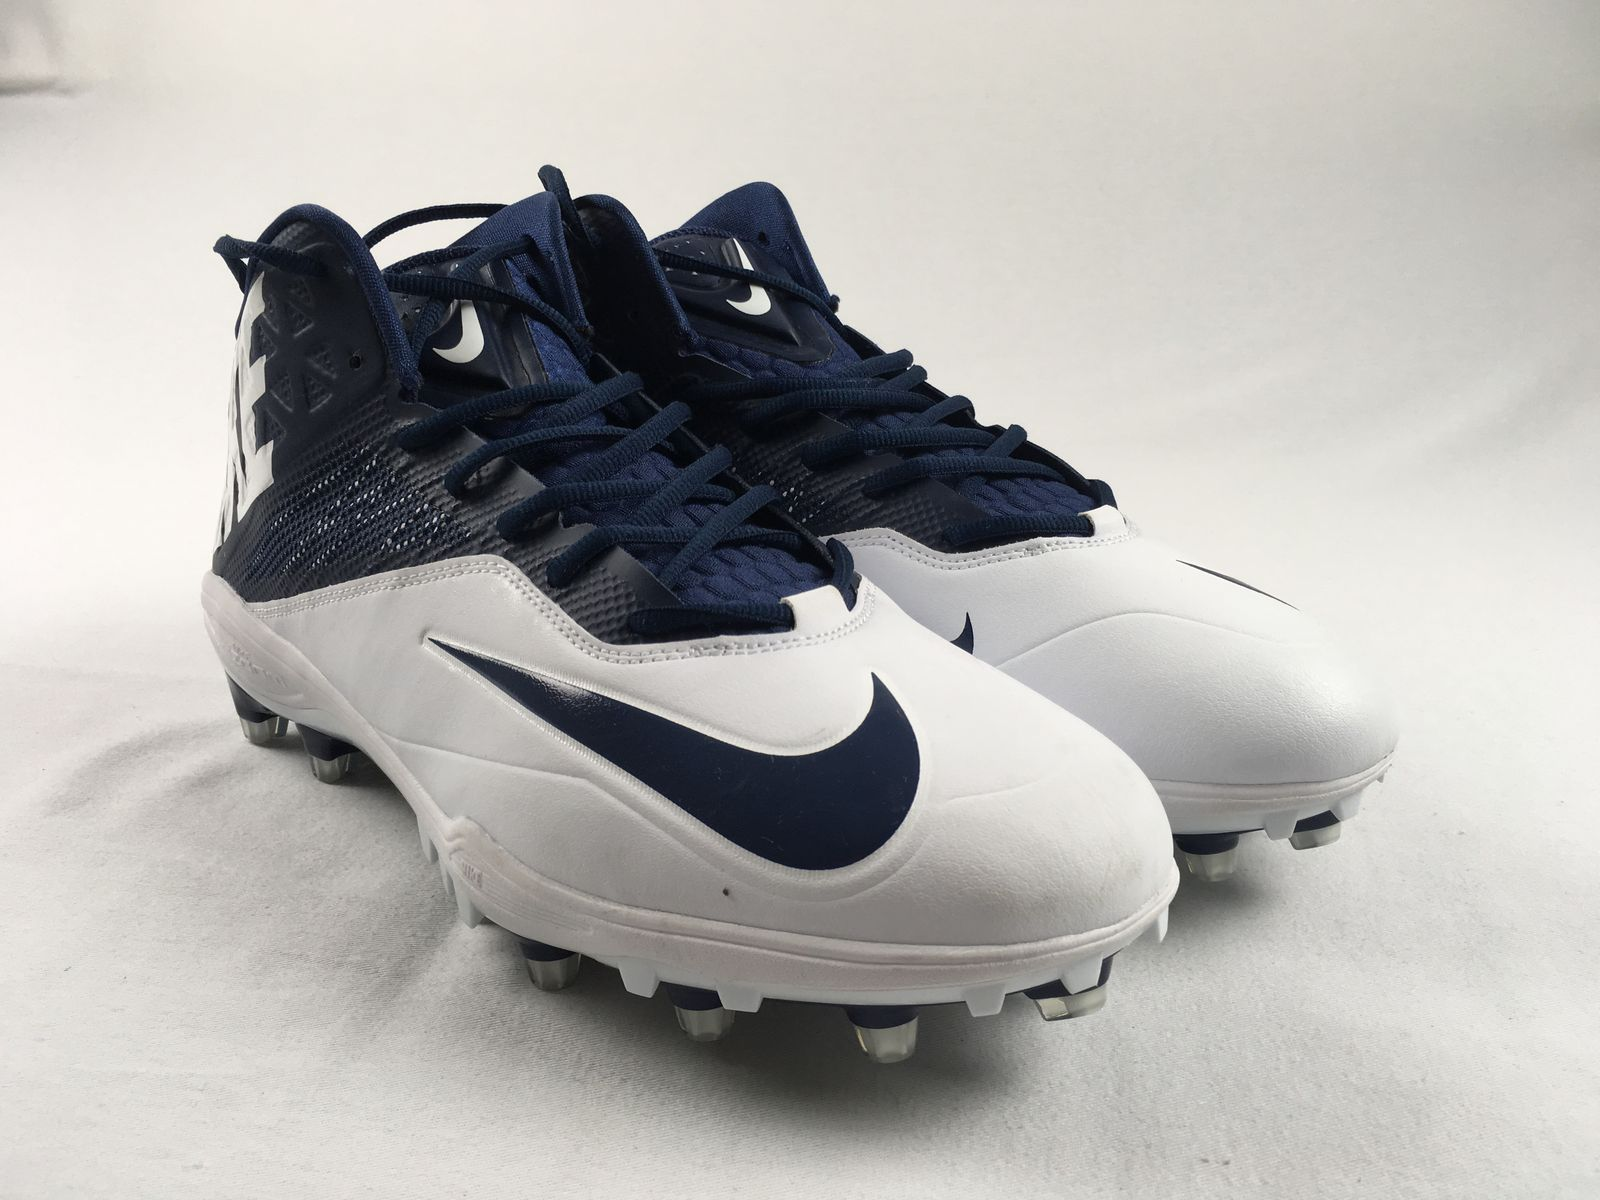 65a8a304c5eb Details about NEW Nike Zoom Code Elite 3 4 TD - Navy Blue Cleats (Men s 14)